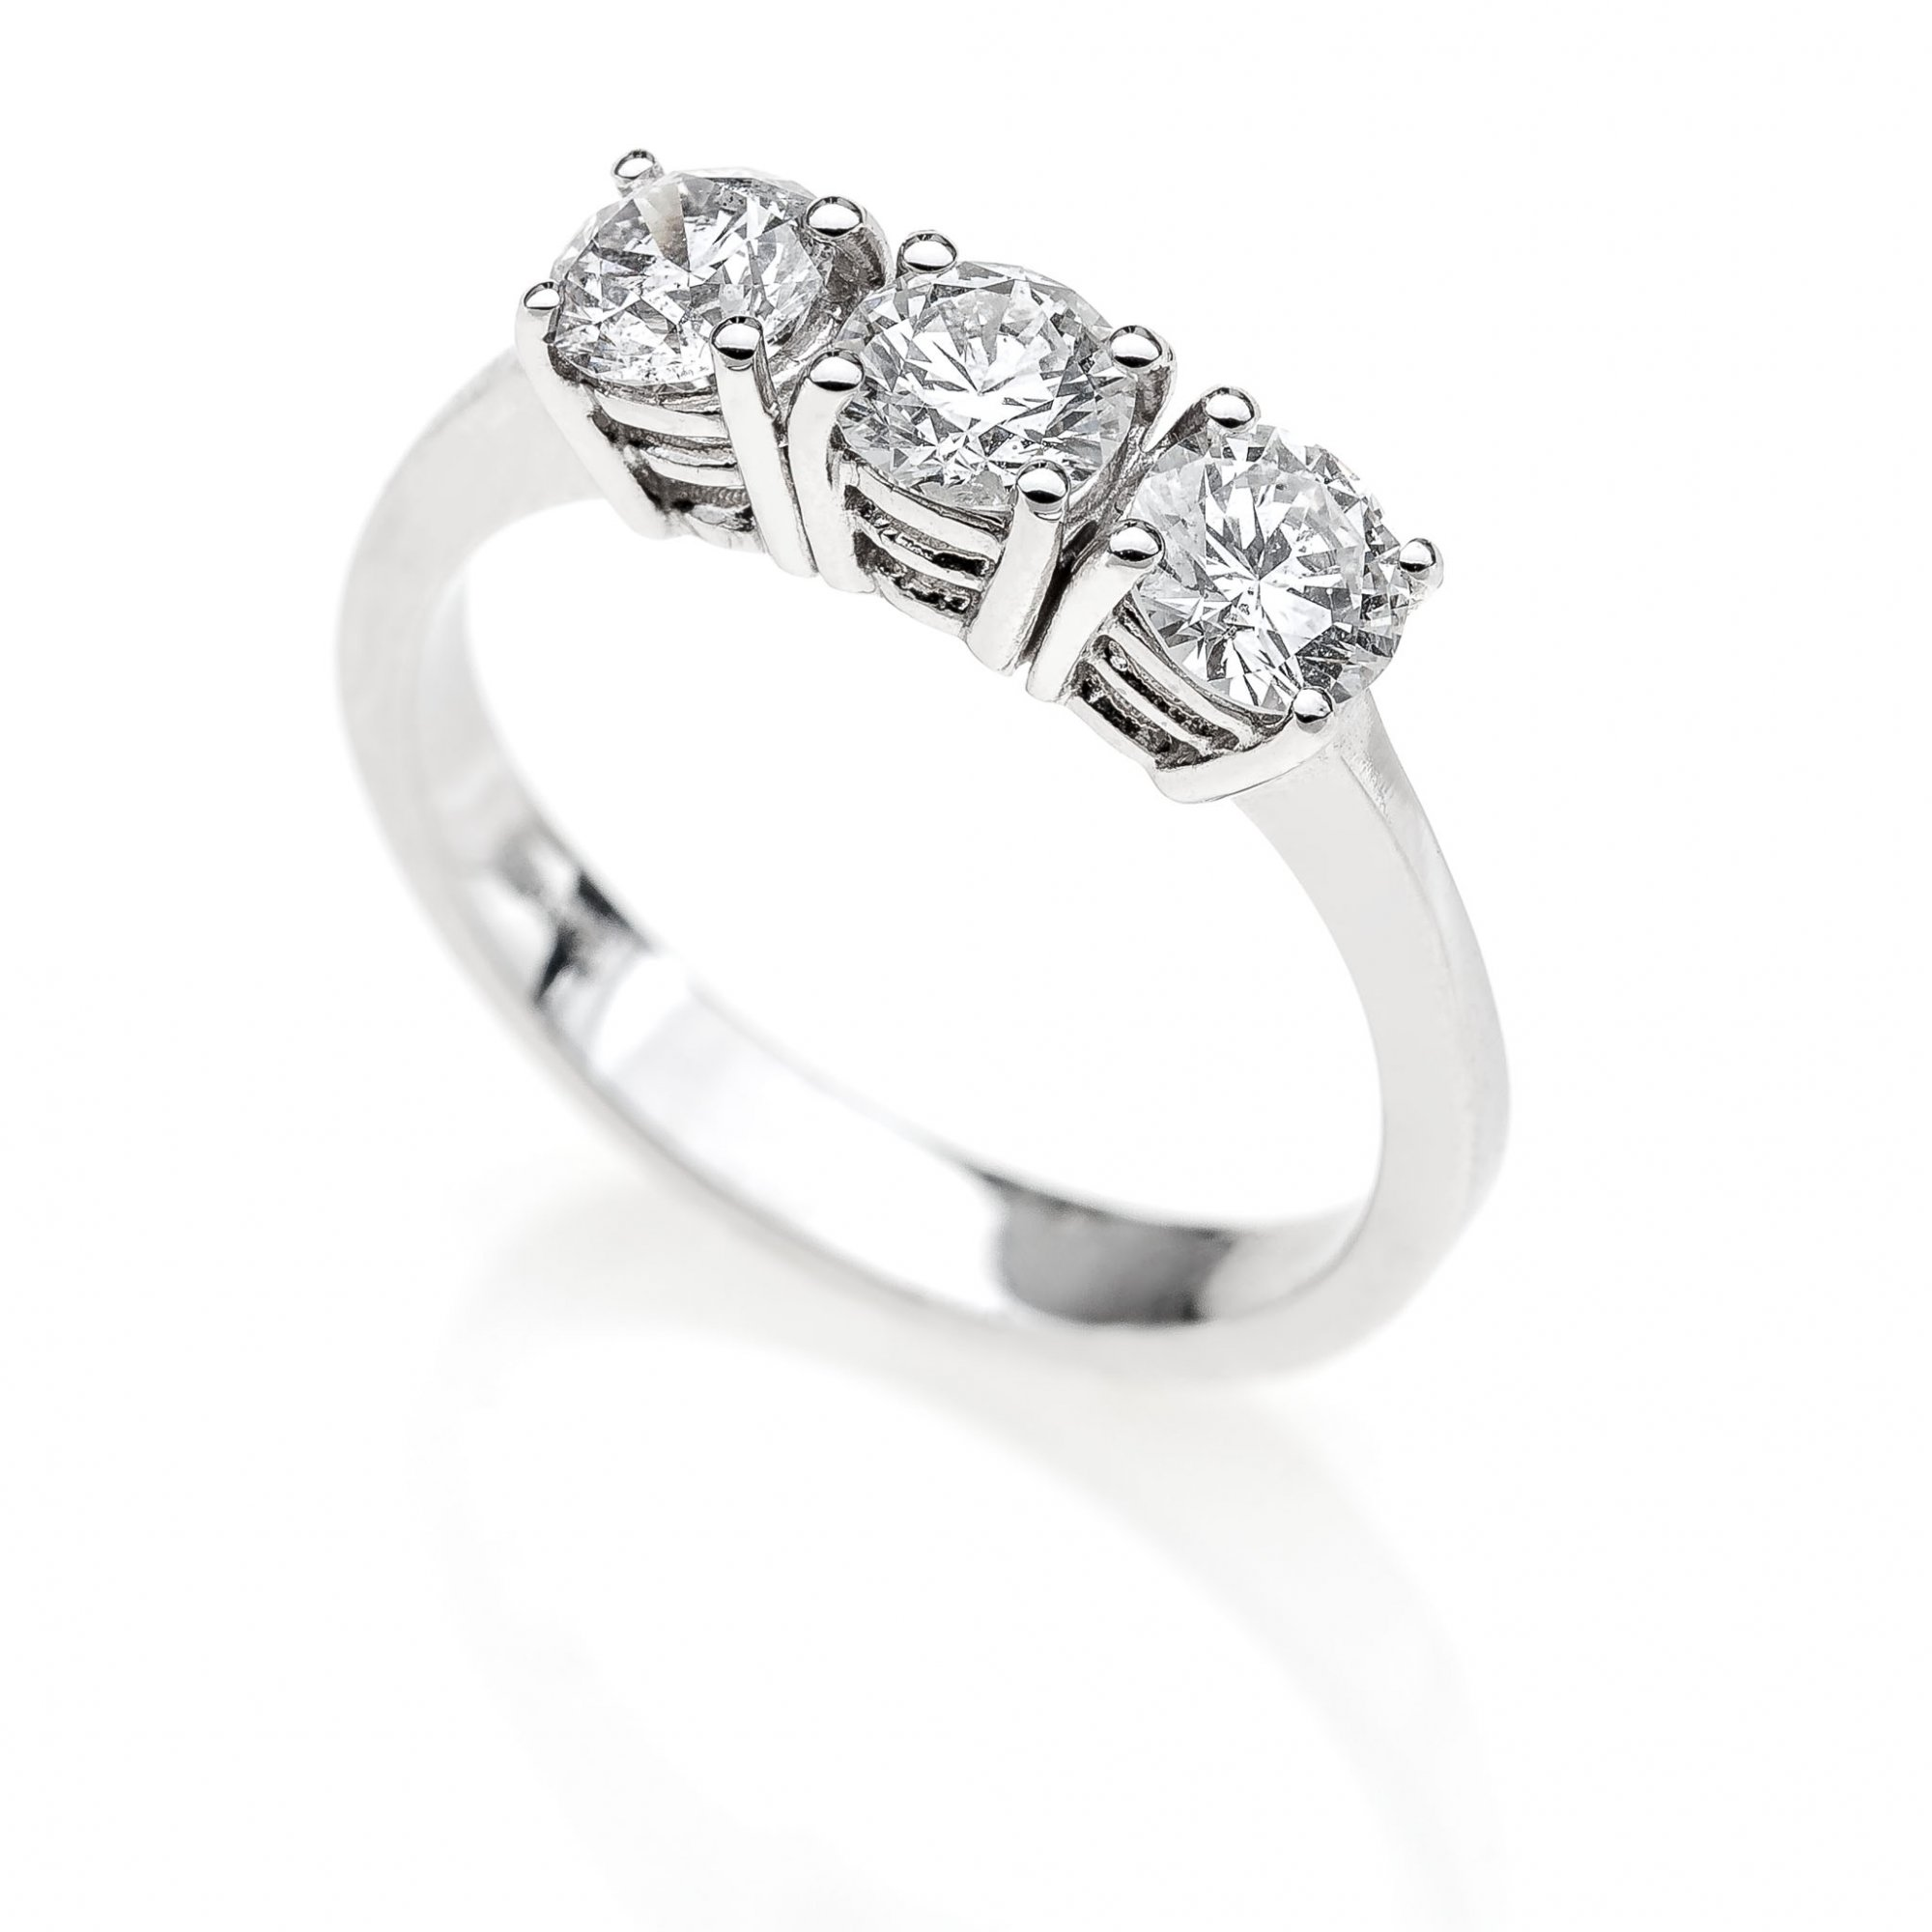 18 KT white gold Trilogy ring with round brilliant cut ct.1.20 VVS1 F color